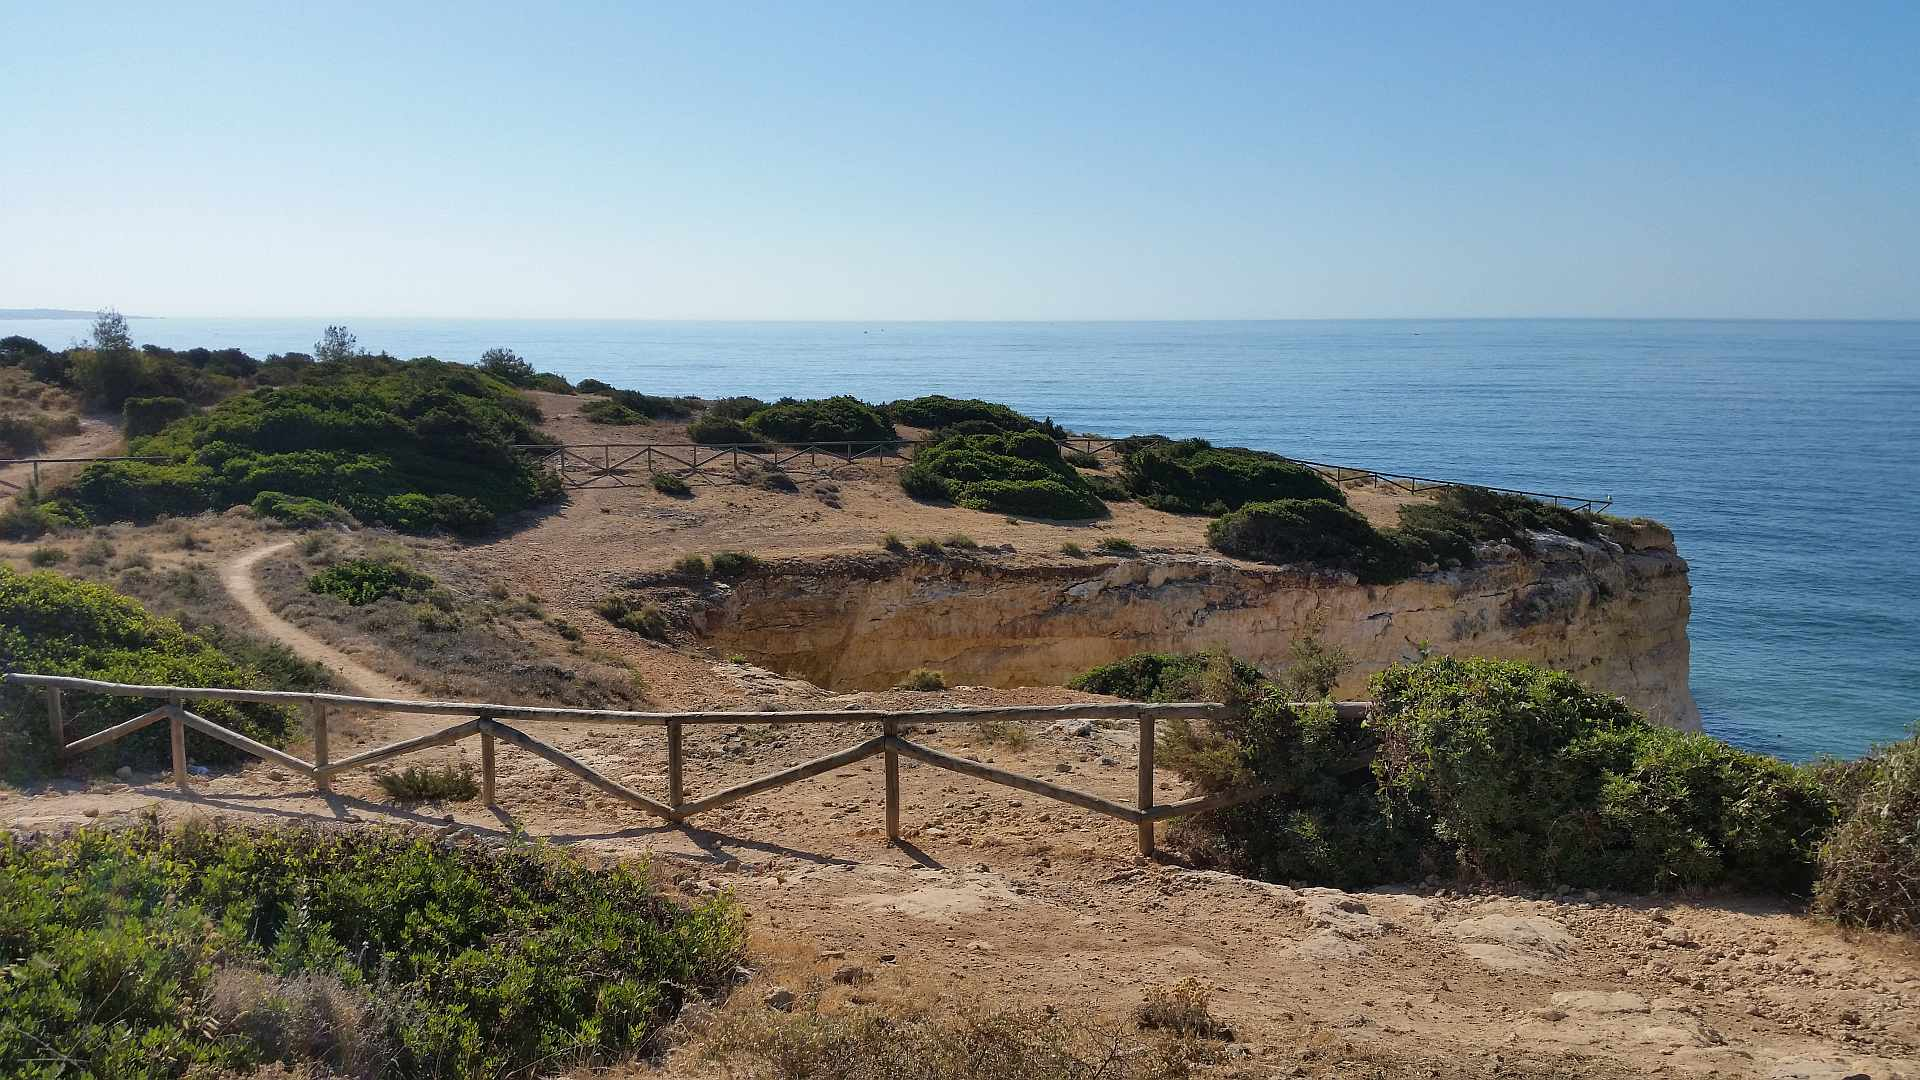 Lagao - Algarve - the path between beaches